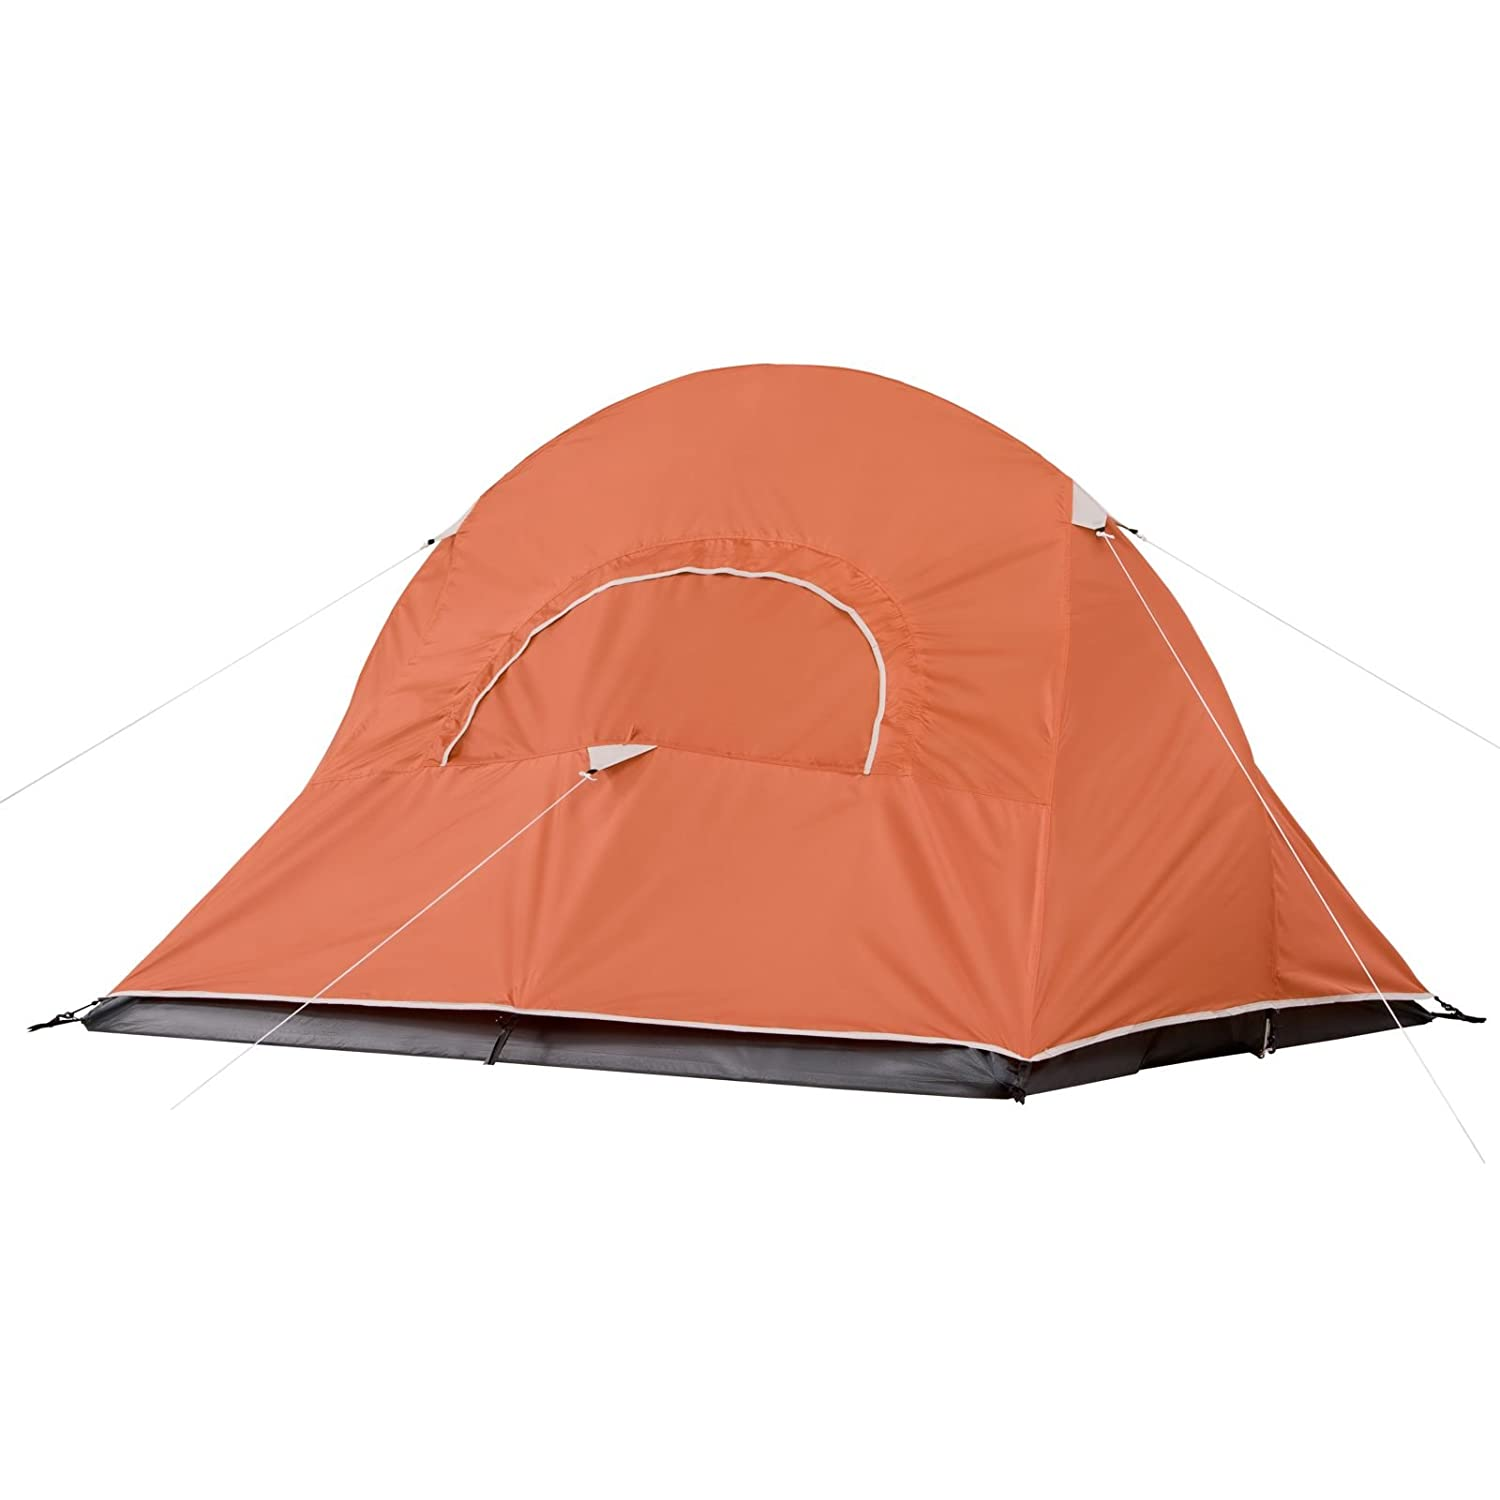 Coleman Hooligan 2 Person Camping Tent